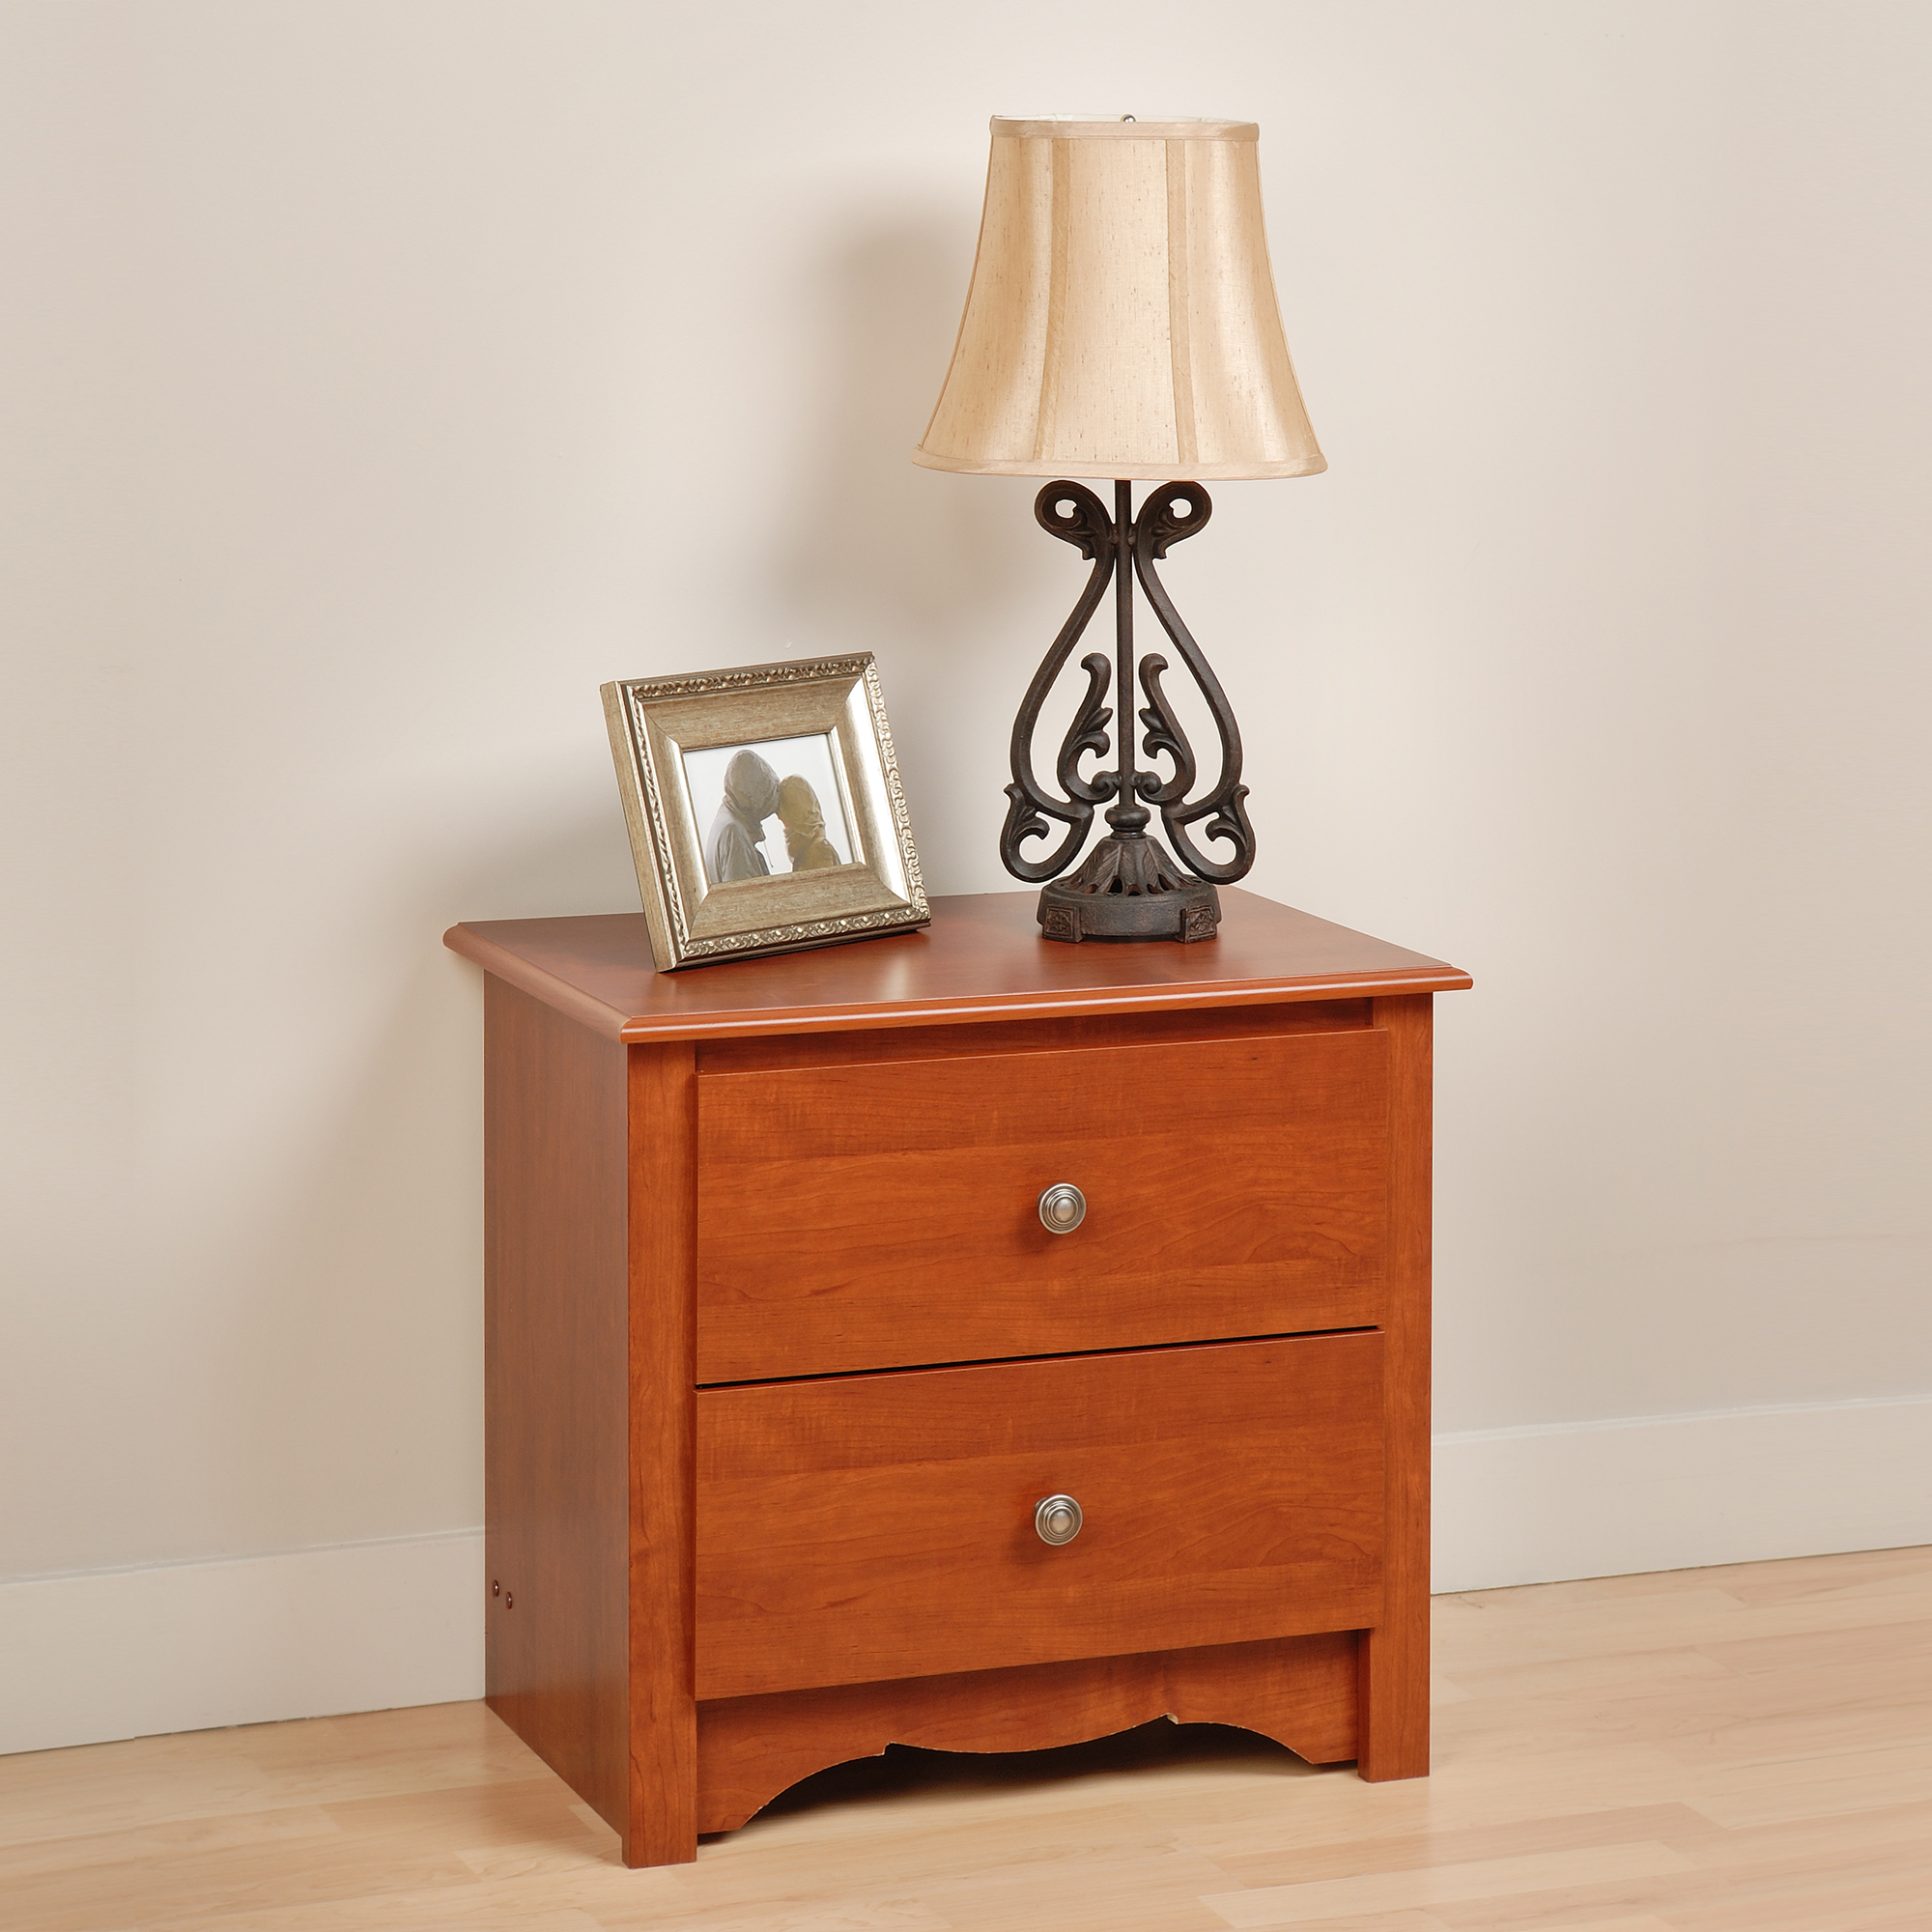 Edenvale 2-Drawer Nightstand, Cherry by Prepac